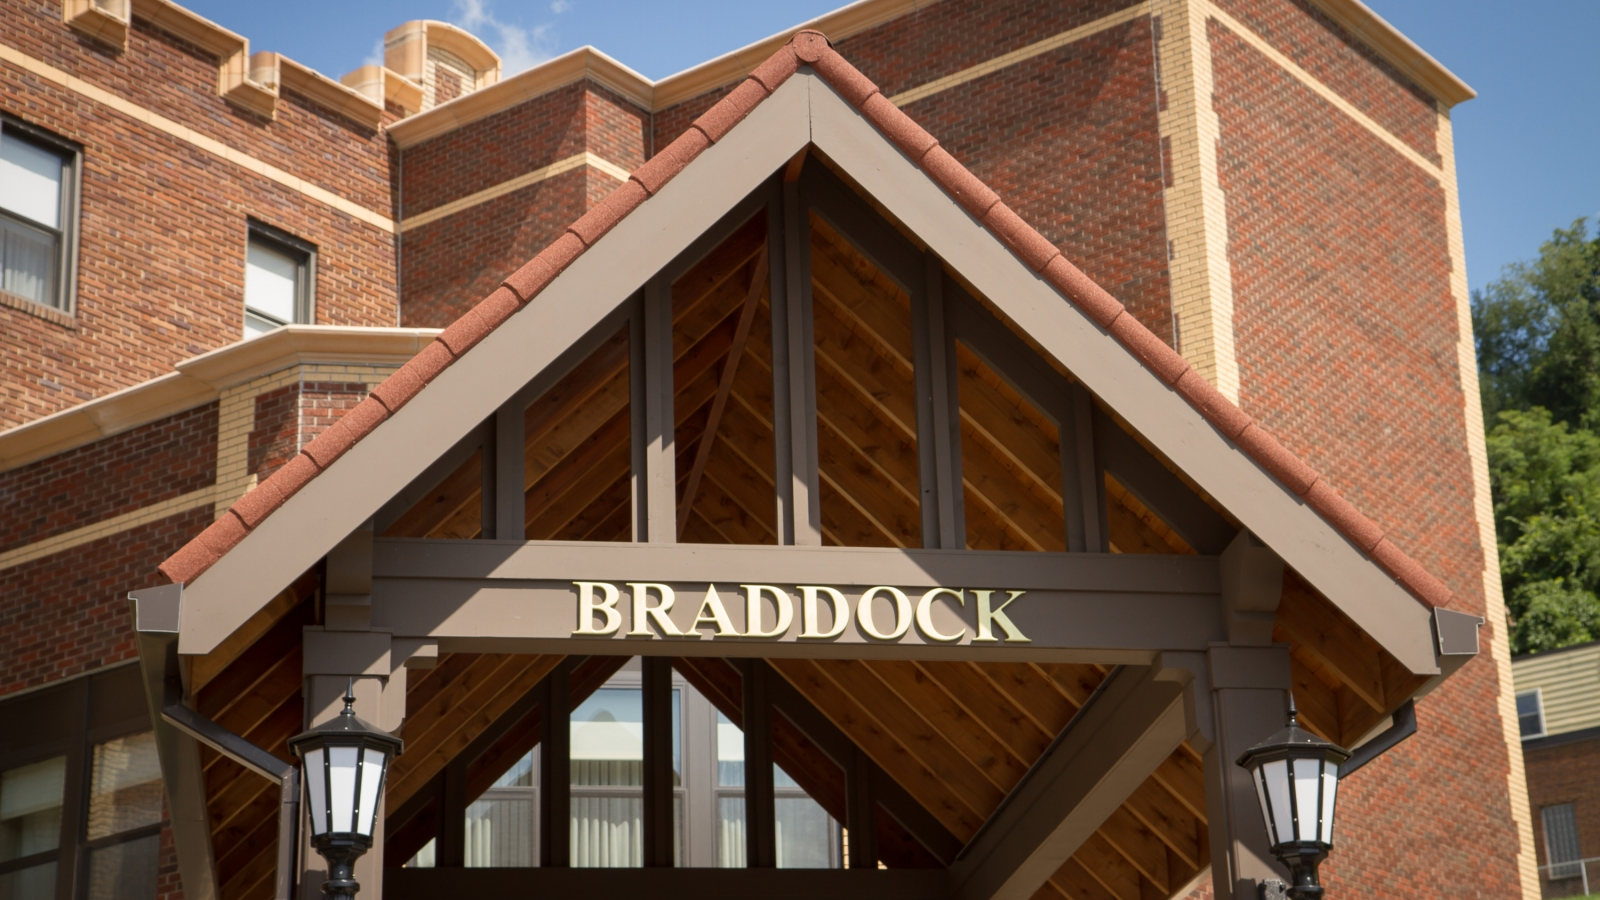 The entrance awning of the Braddock Apartments.